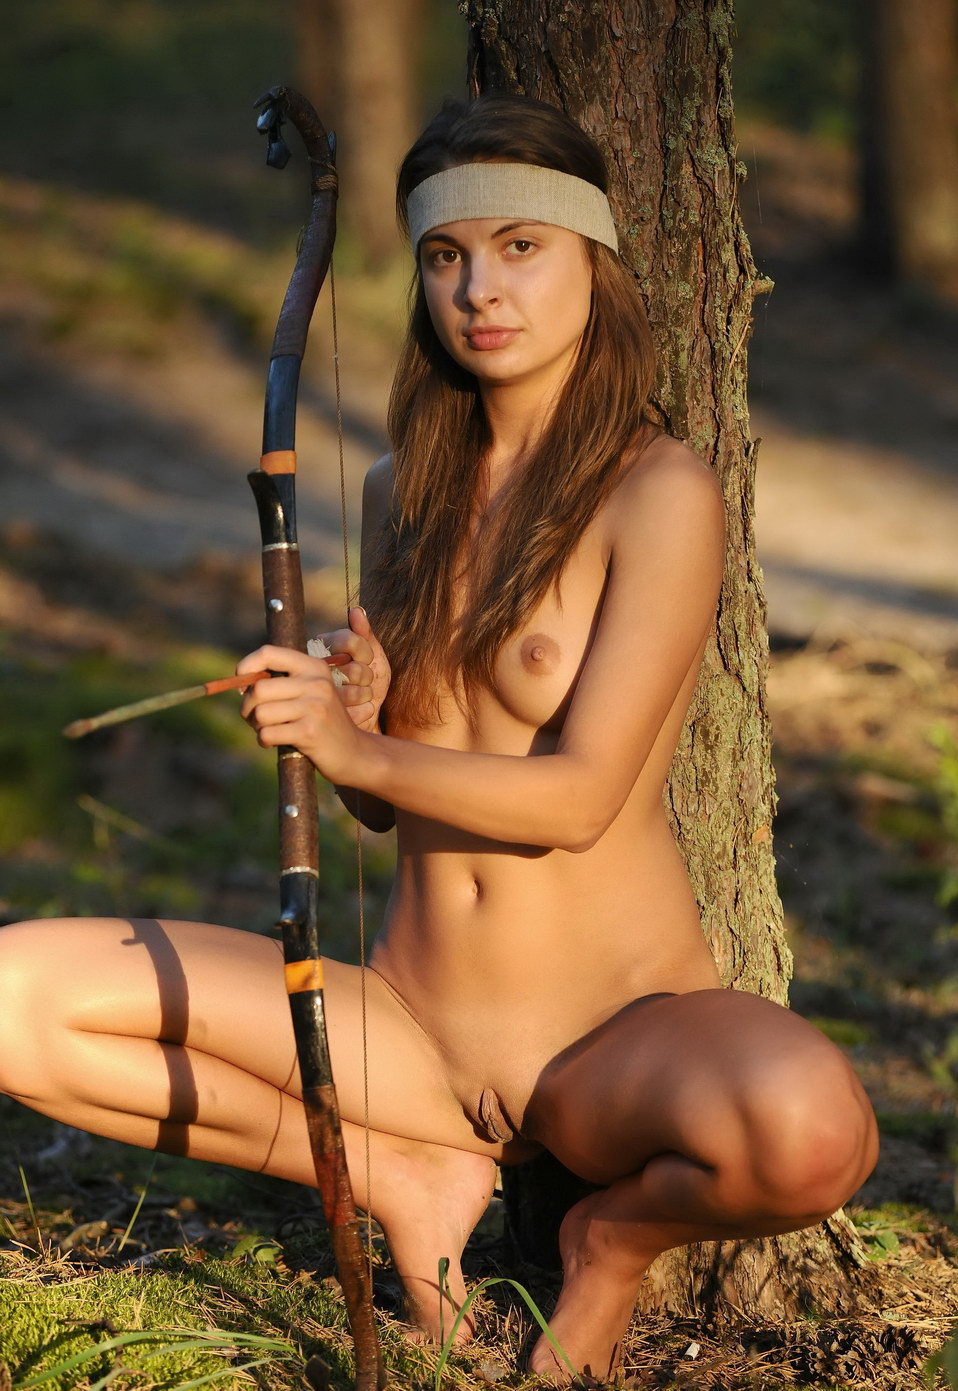 Naked bow hunting girl cartoon image